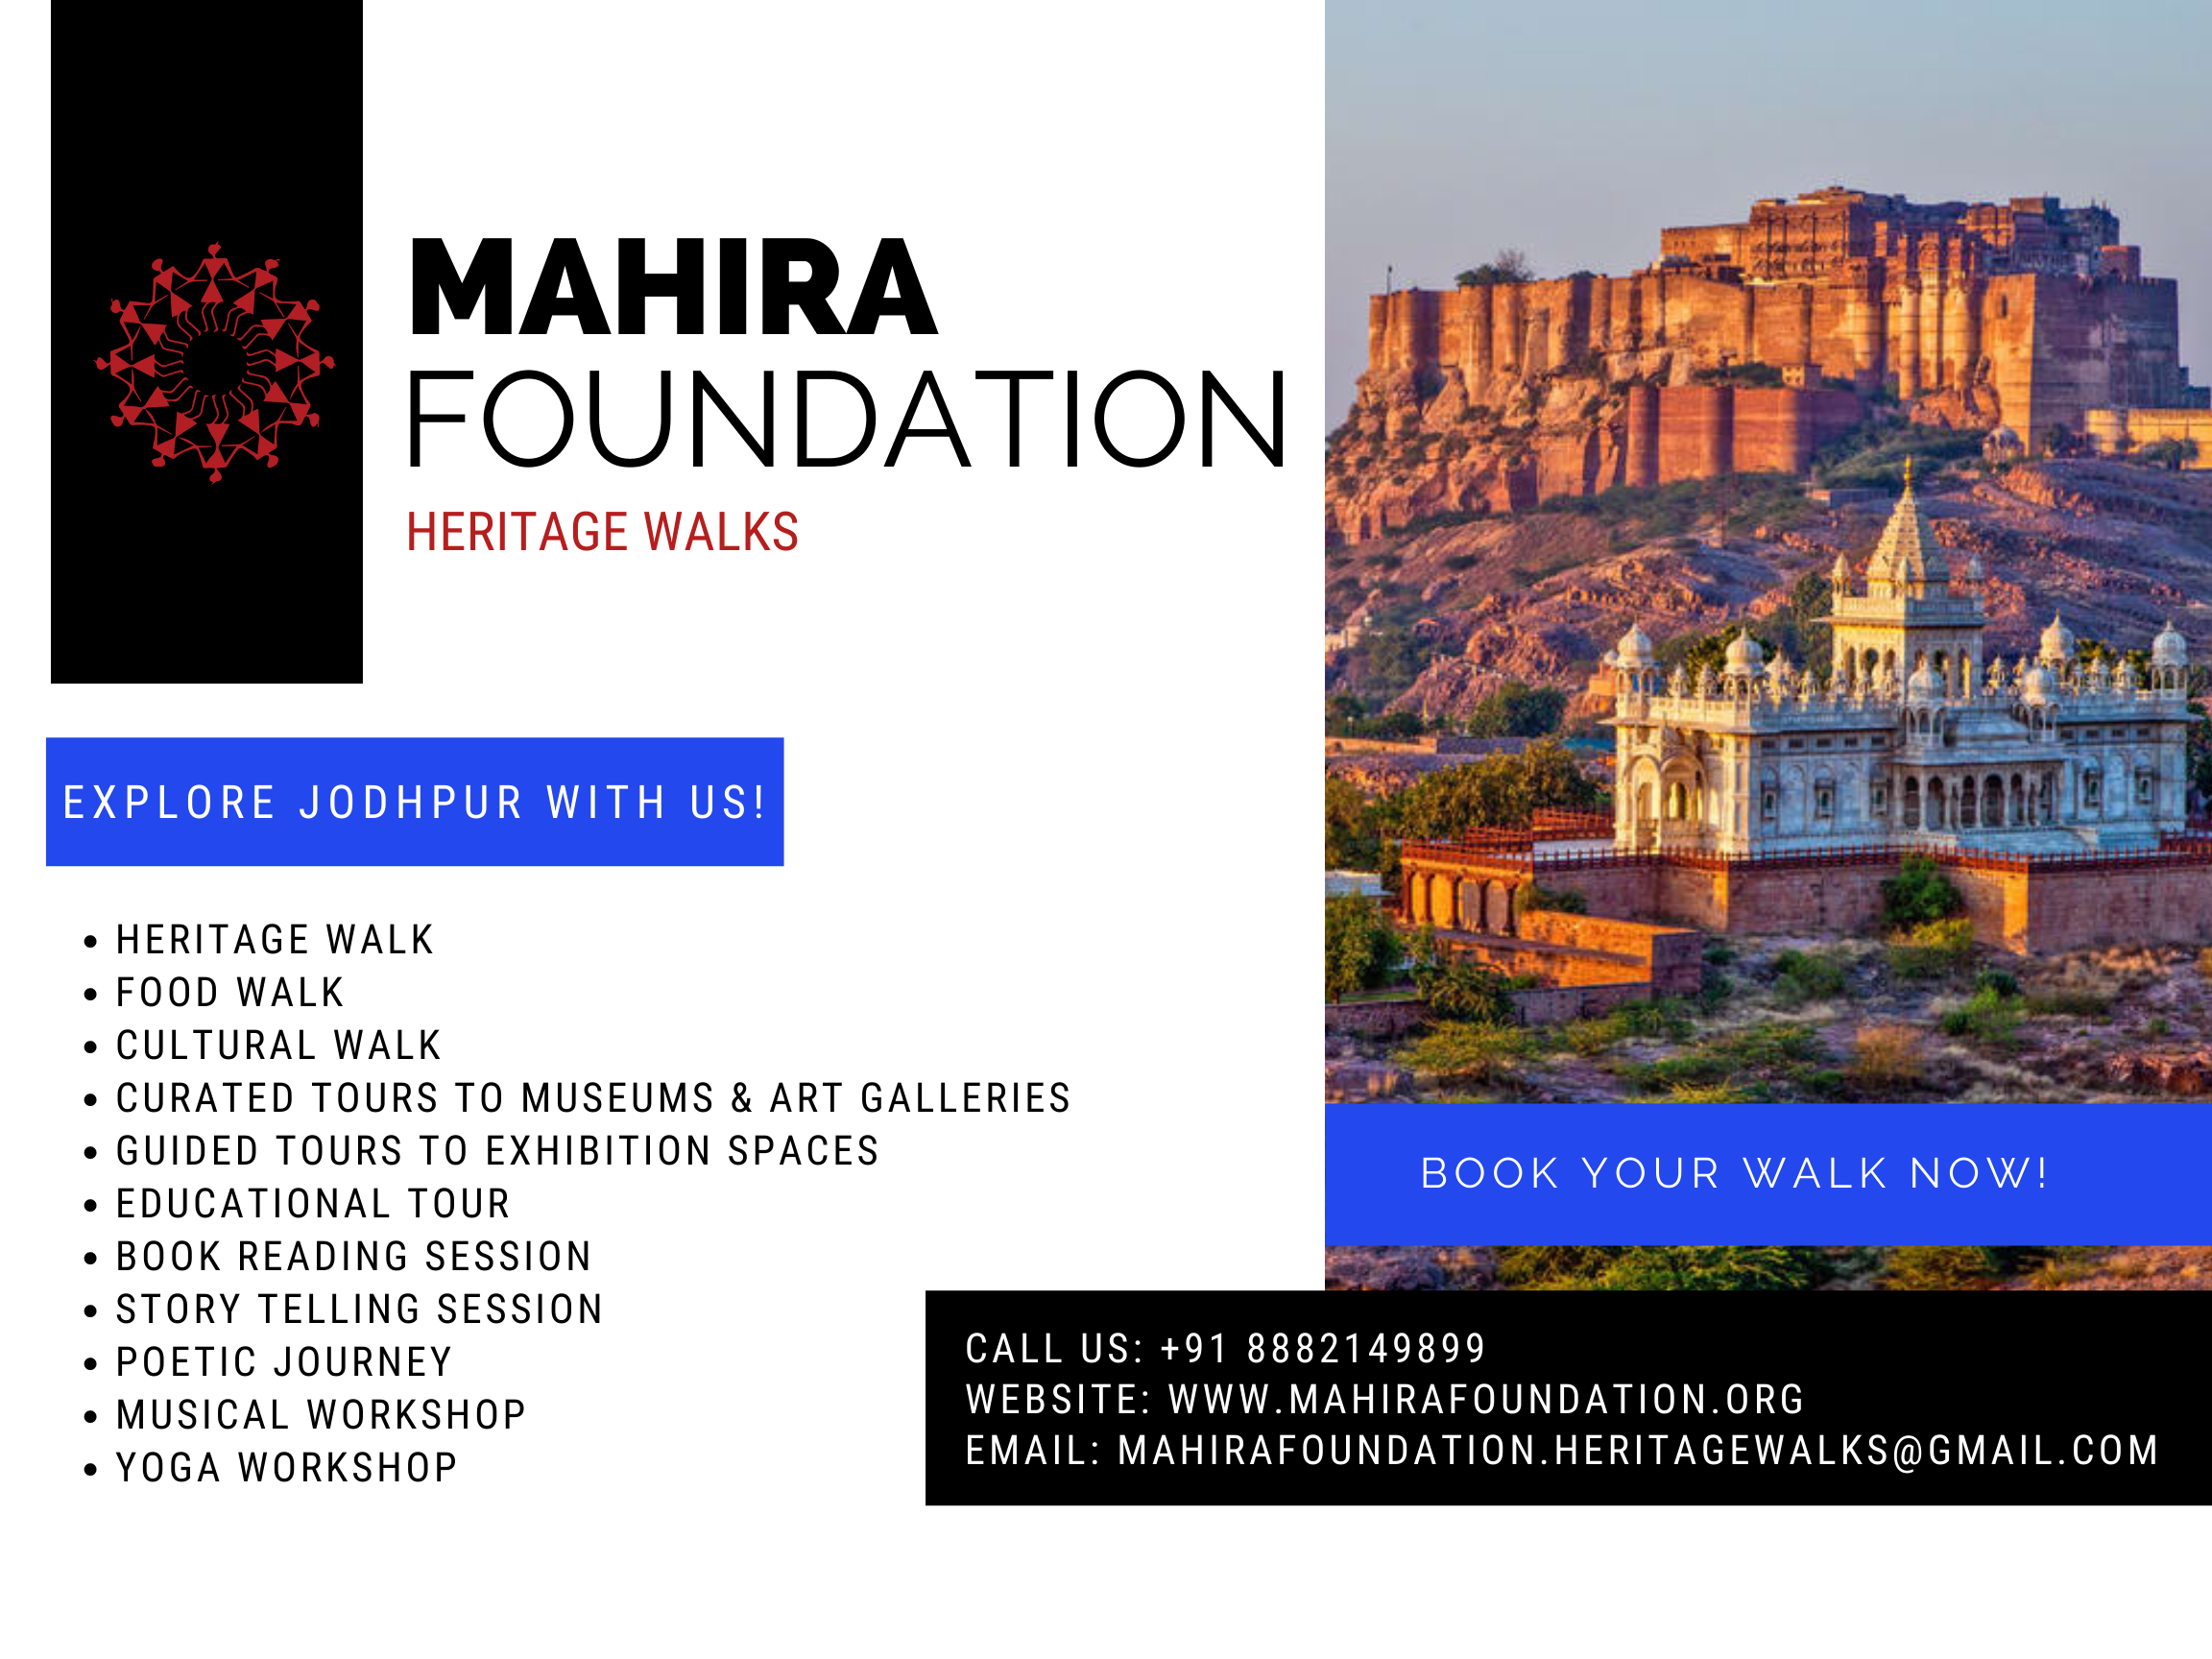 Heritage Walks (Jodhpur)